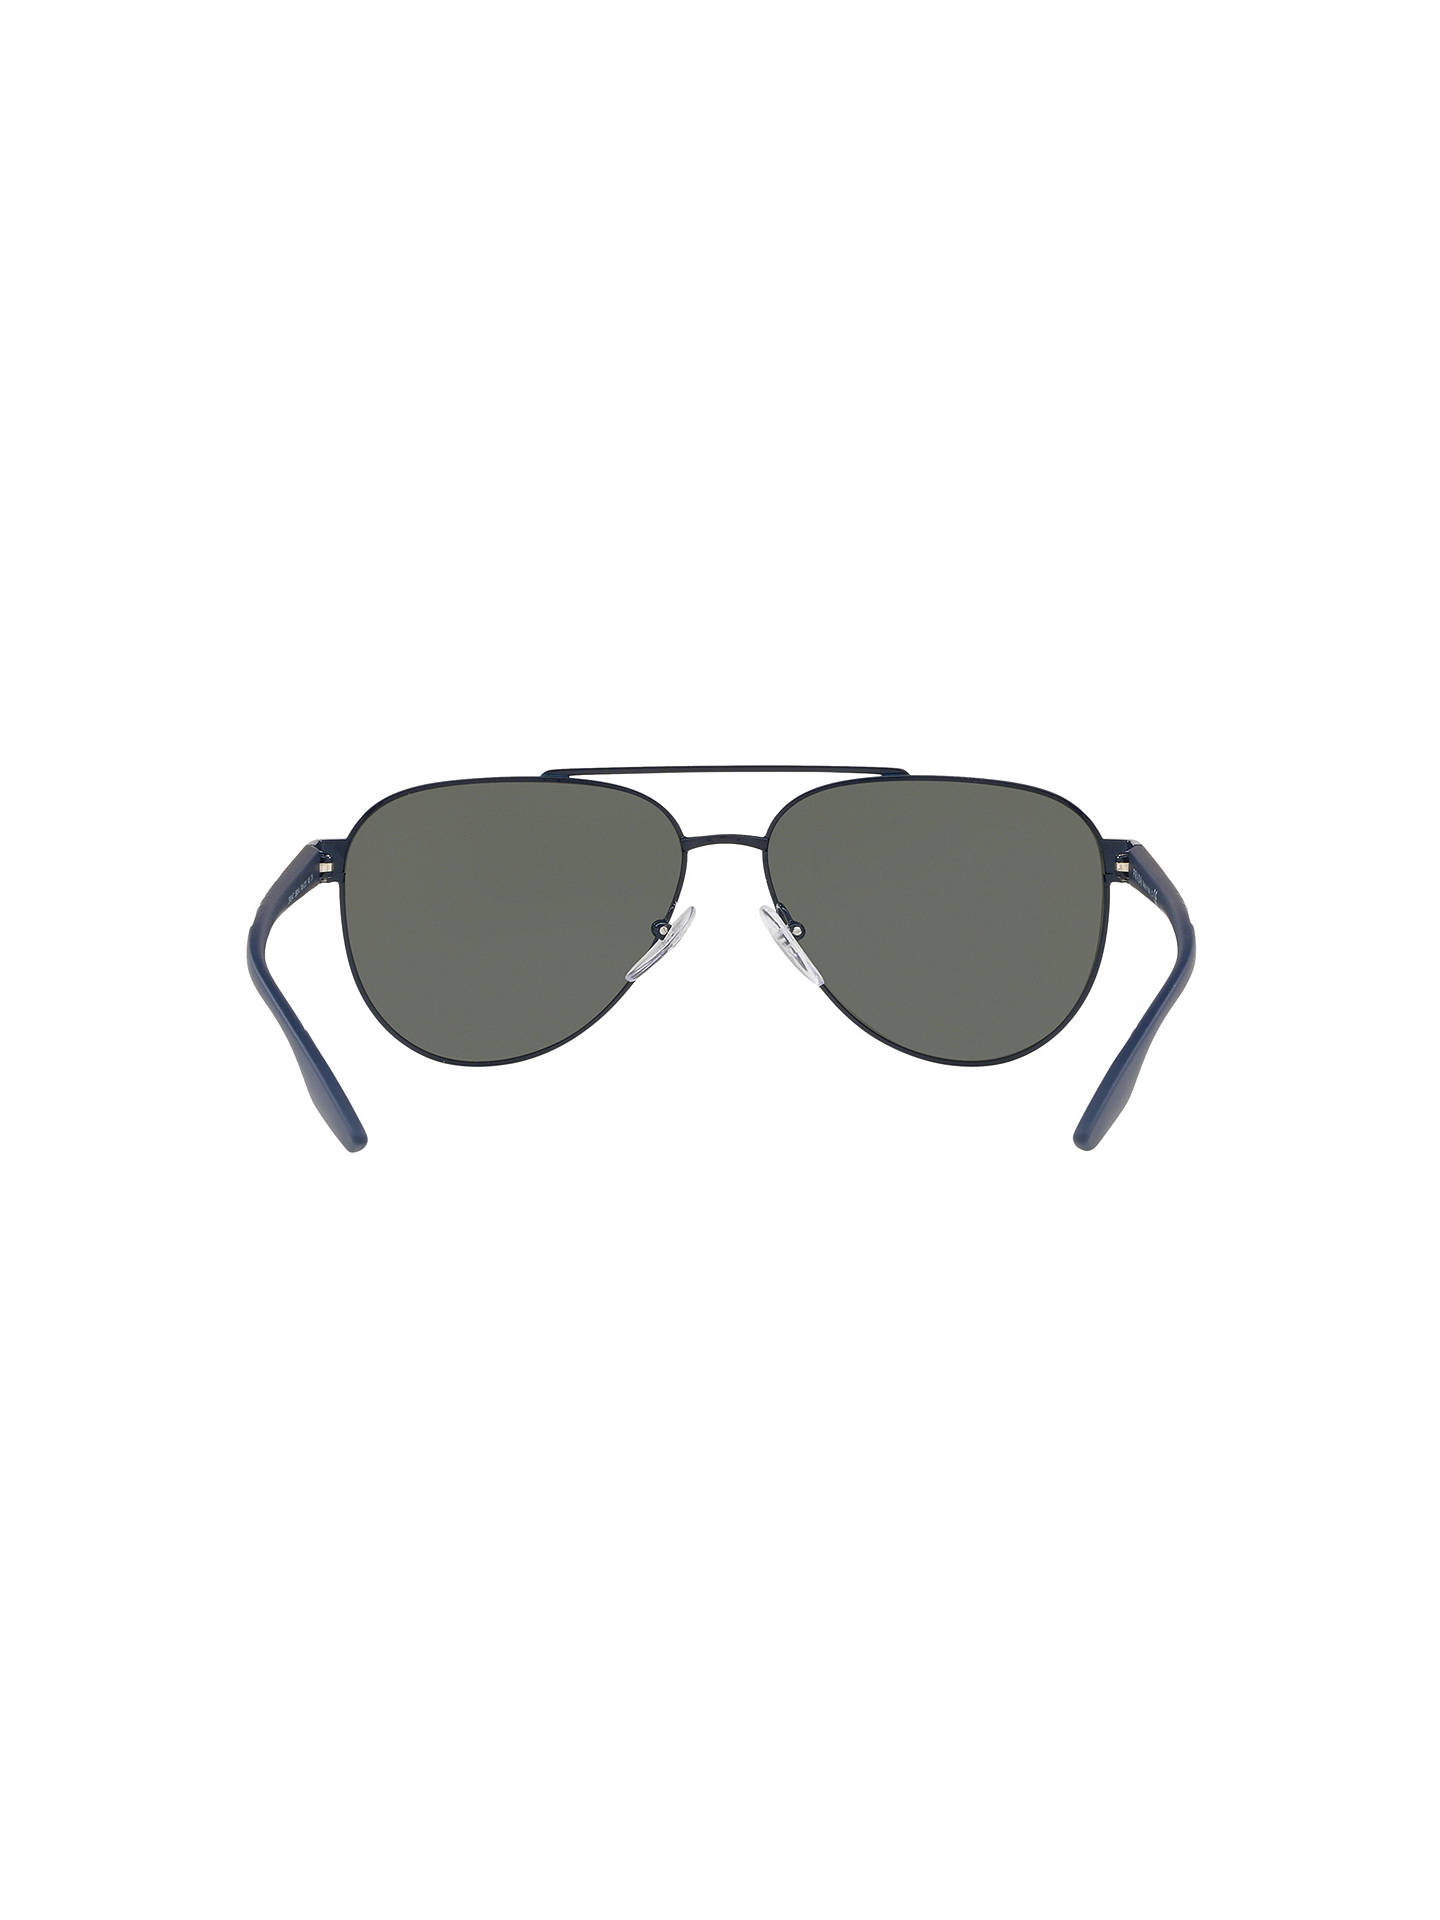 BuyPrada Linea Rossa PS 54TS Men's Aviator Sunglasses, Navy/Mirror Green Online at johnlewis.com